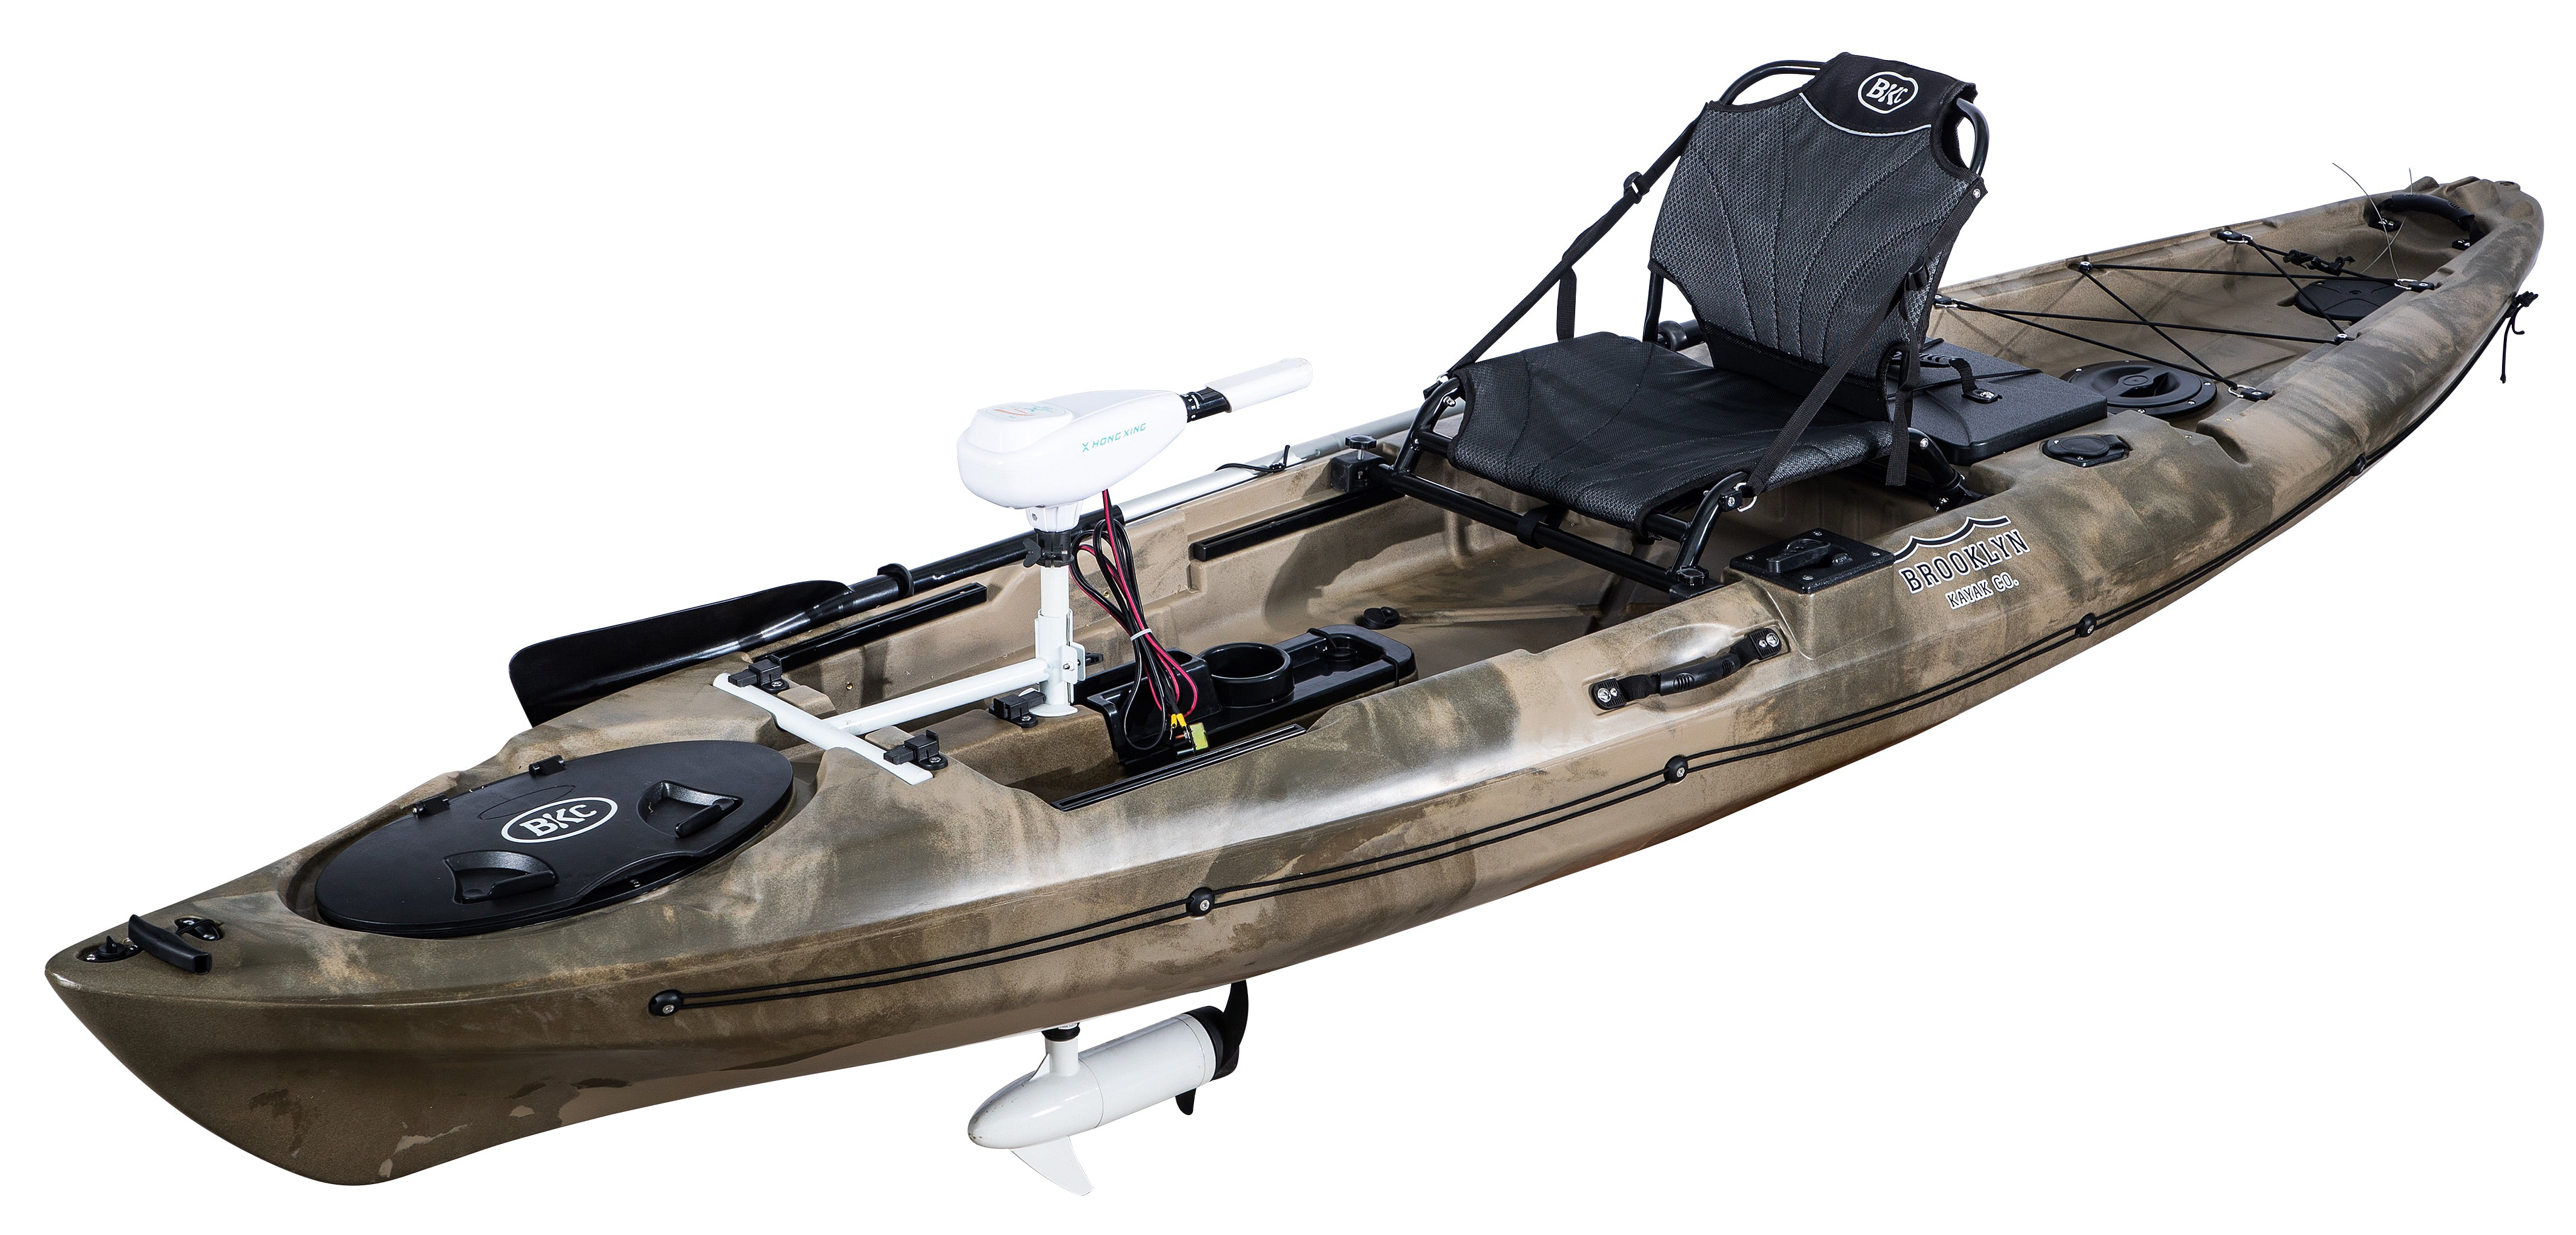 BKC PK12 Angler 12-foot Sit On Top Solo Fishing Kayak w/ Trolling Motor, Paddle, and Upright Aluminum Seat